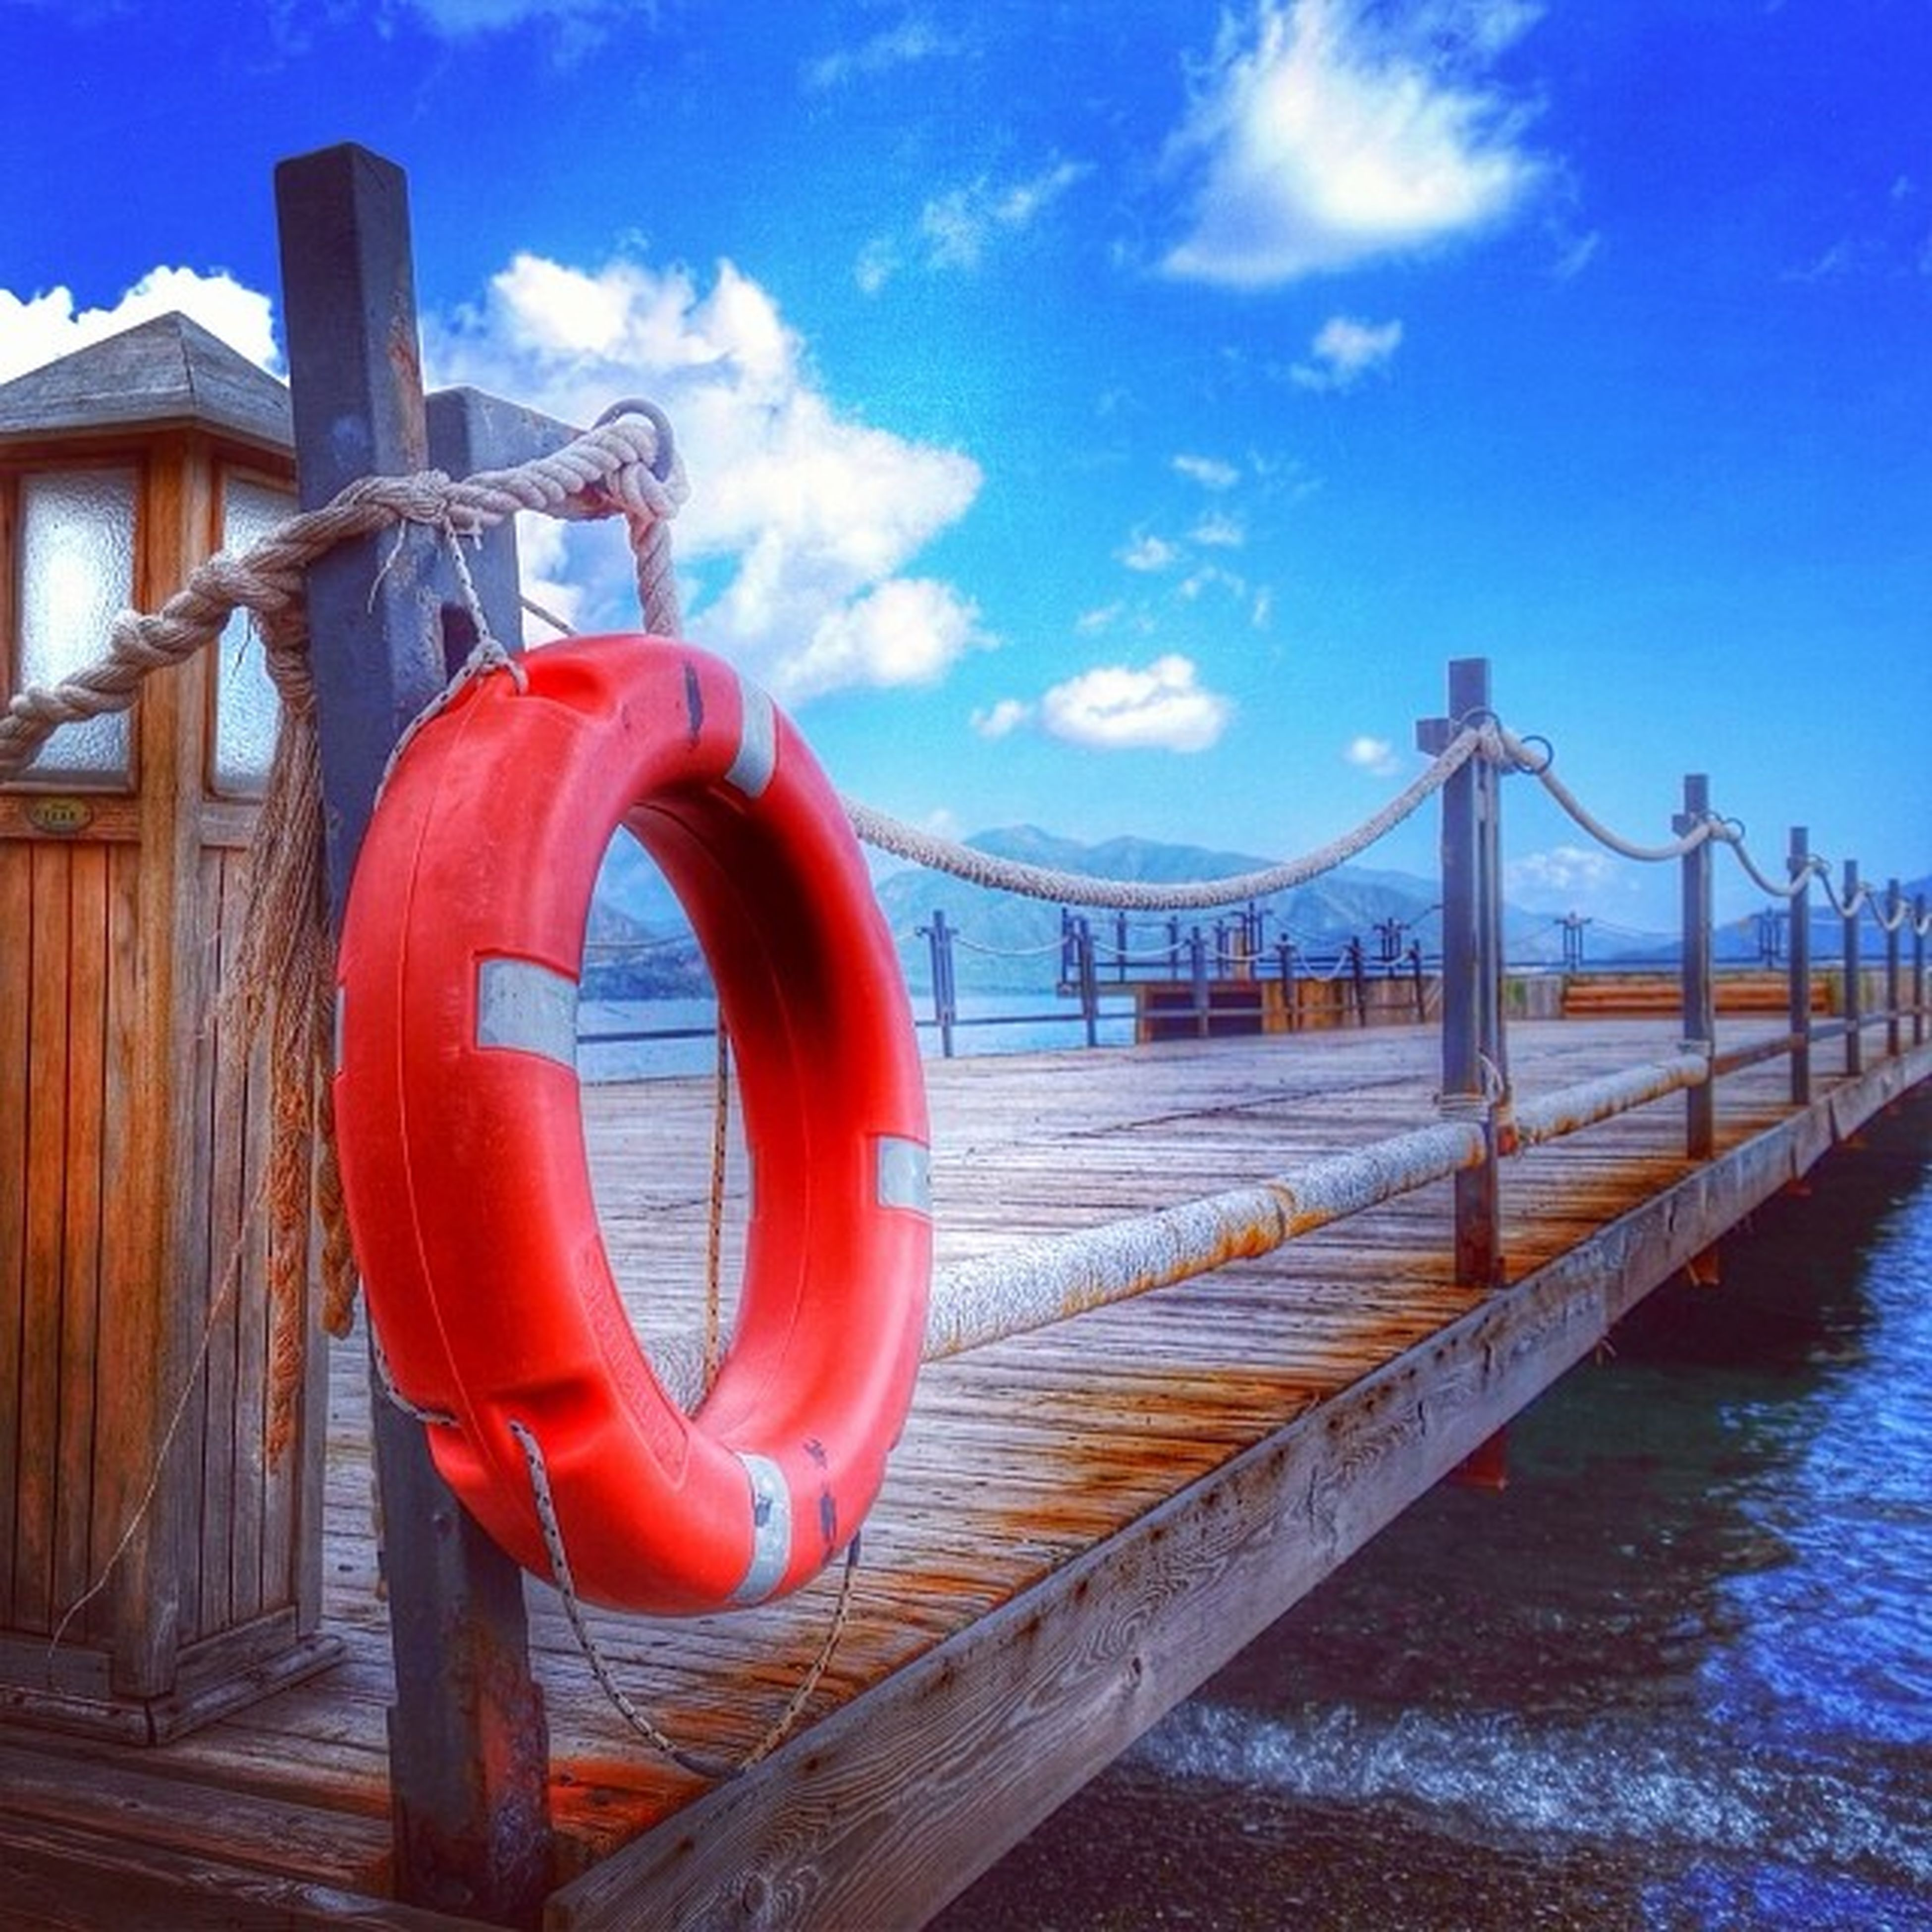 water, built structure, sea, transportation, railing, blue, red, architecture, sky, nautical vessel, pier, mode of transport, safety, bridge - man made structure, metal, connection, river, outdoors, boat, wood - material